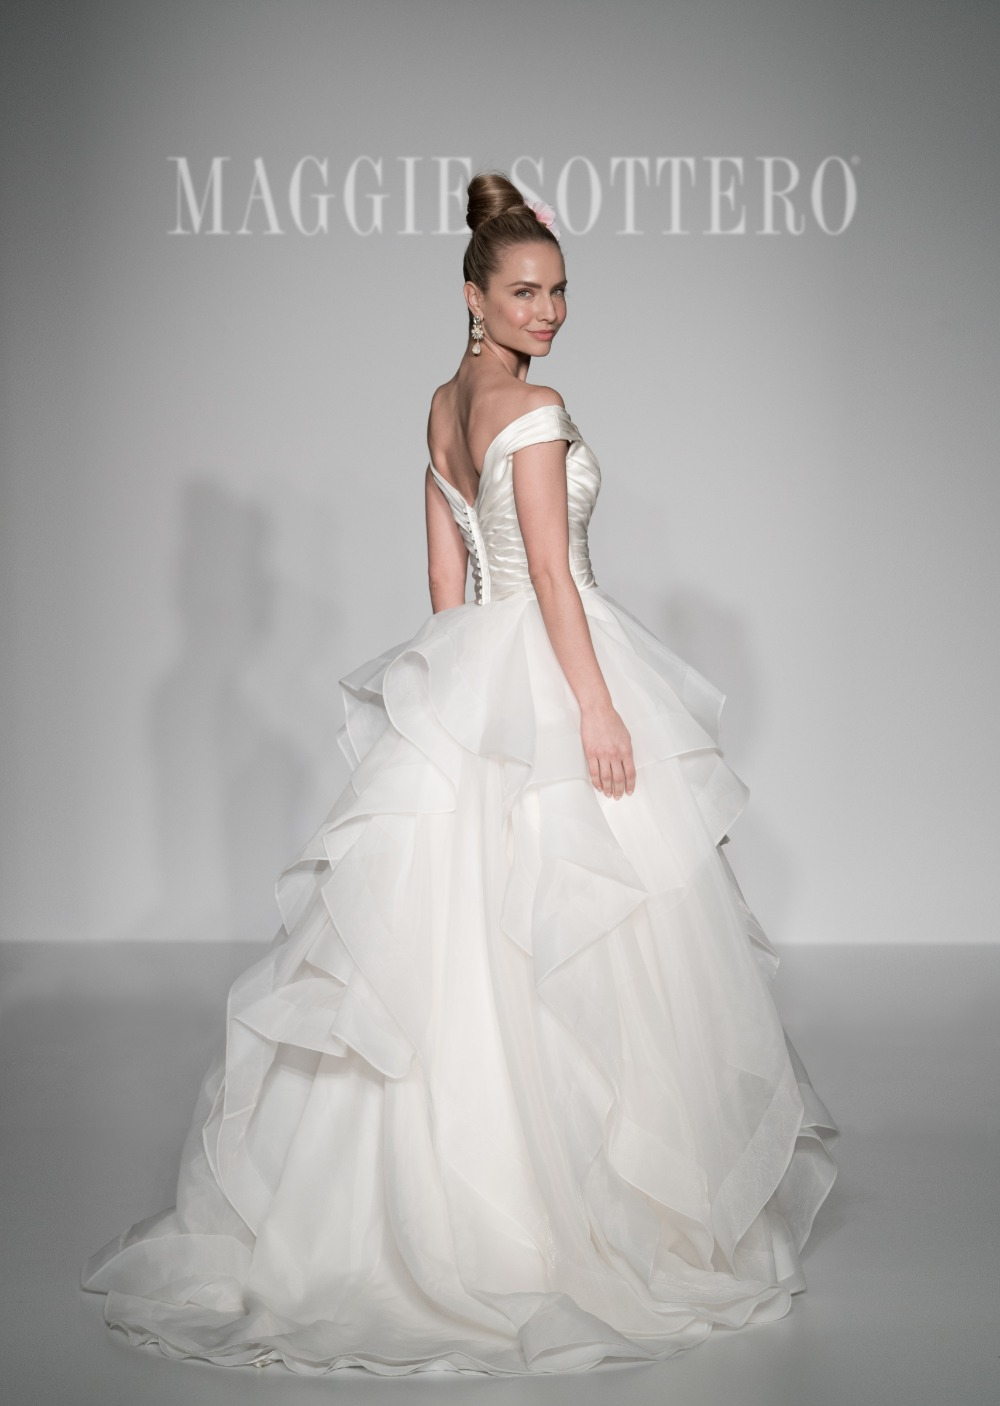 Maggie Sottero Fall 2016 Bridal Collection